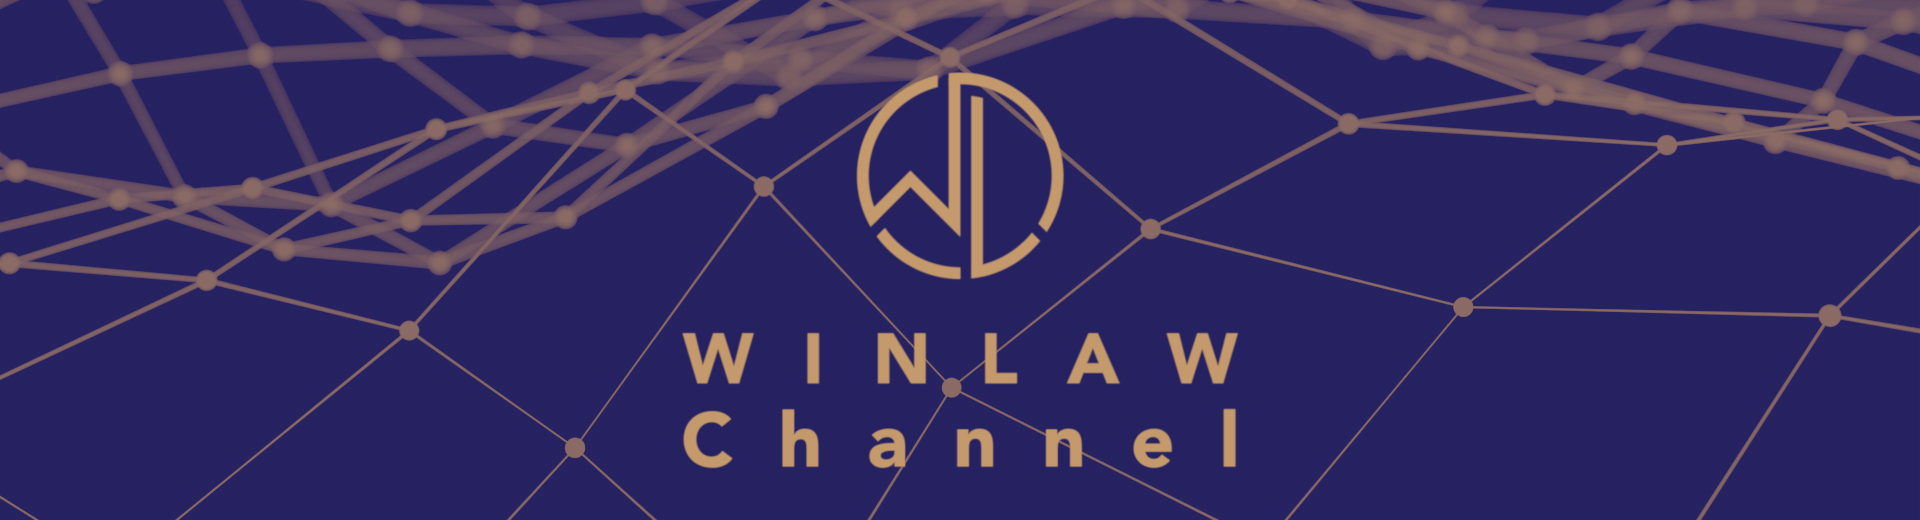 WINLAW Channel banner